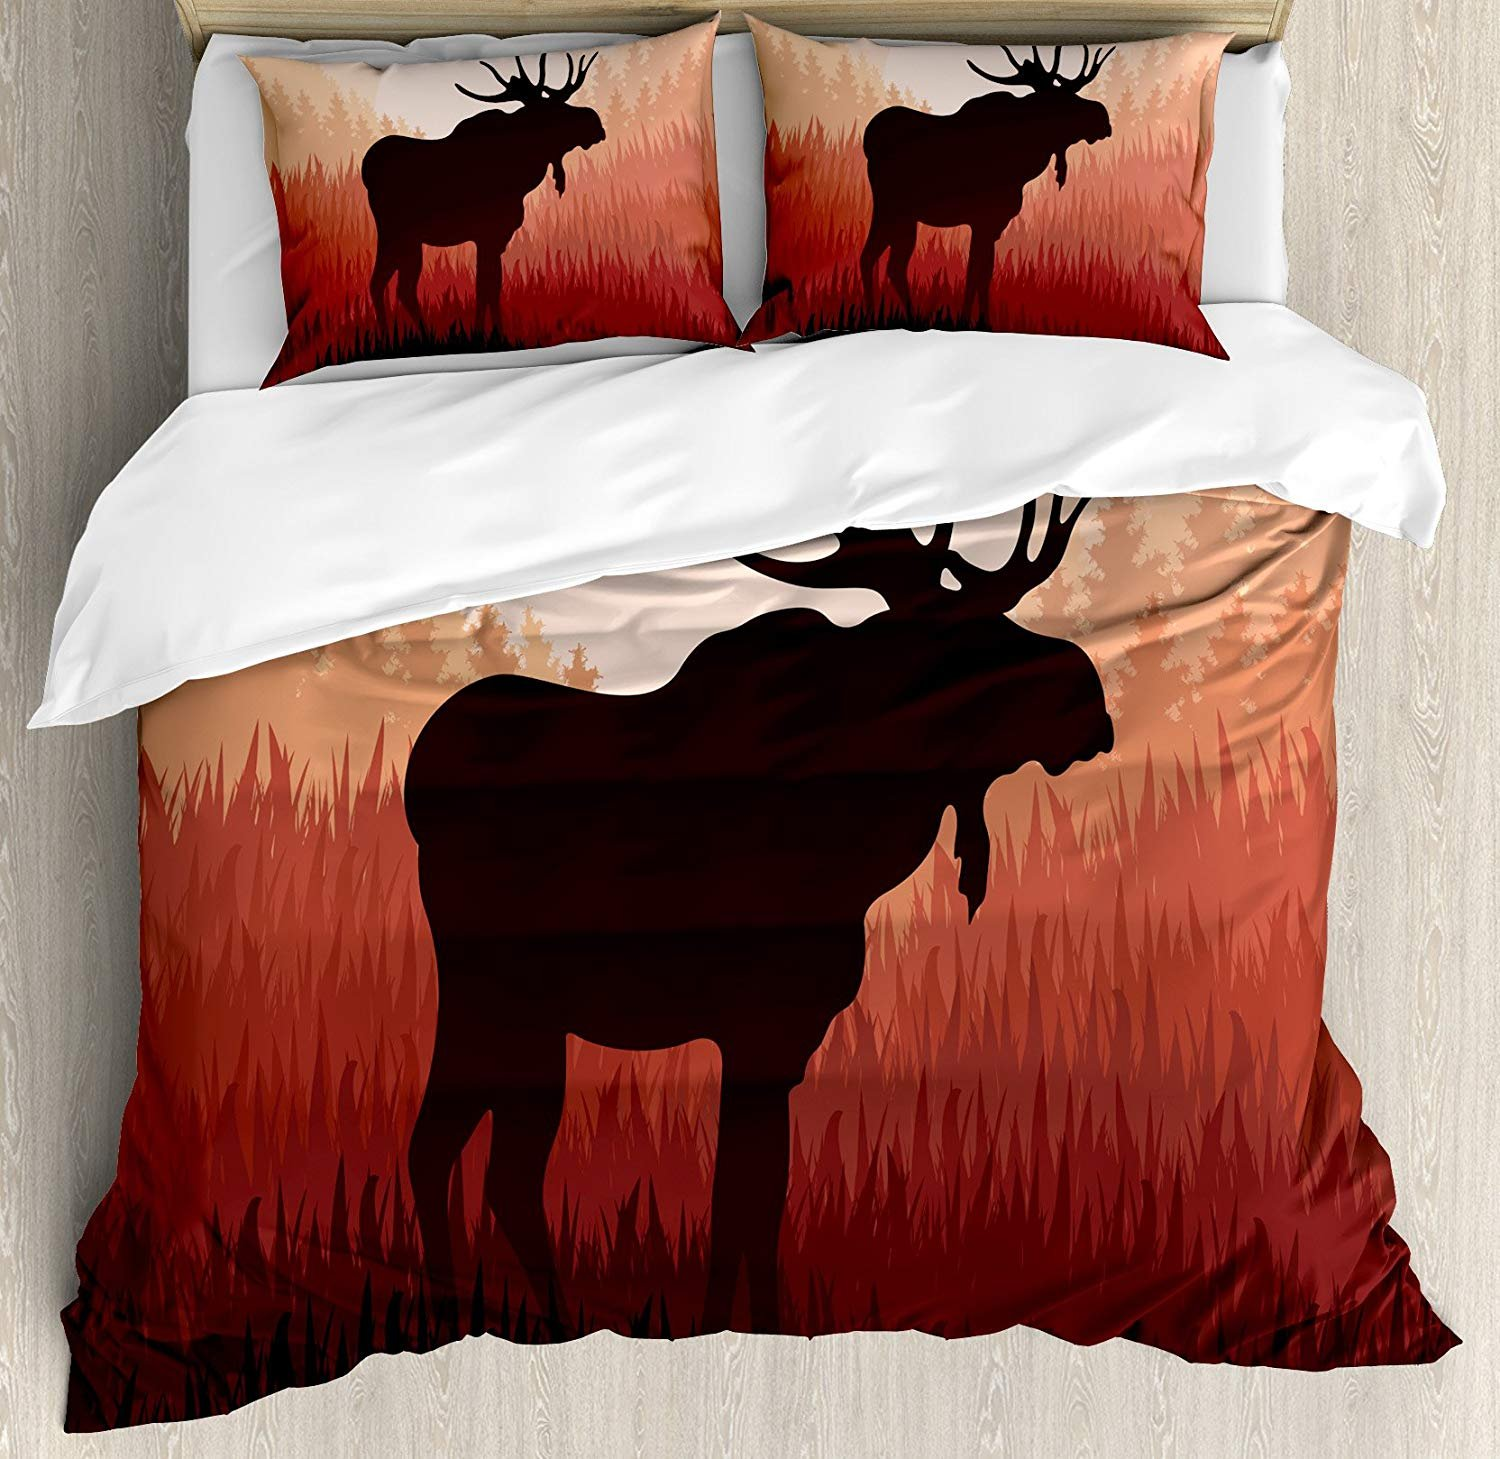 Duvet Cover Set Moose Antlers in Wild Alaska Forest Rusty Abstract Landscape Design Deer Theme Woods Ultra Soft Breathable Durable Twill Plush 4 Pcs Bedding Sets for Kids/Teens/Adults Twin Size